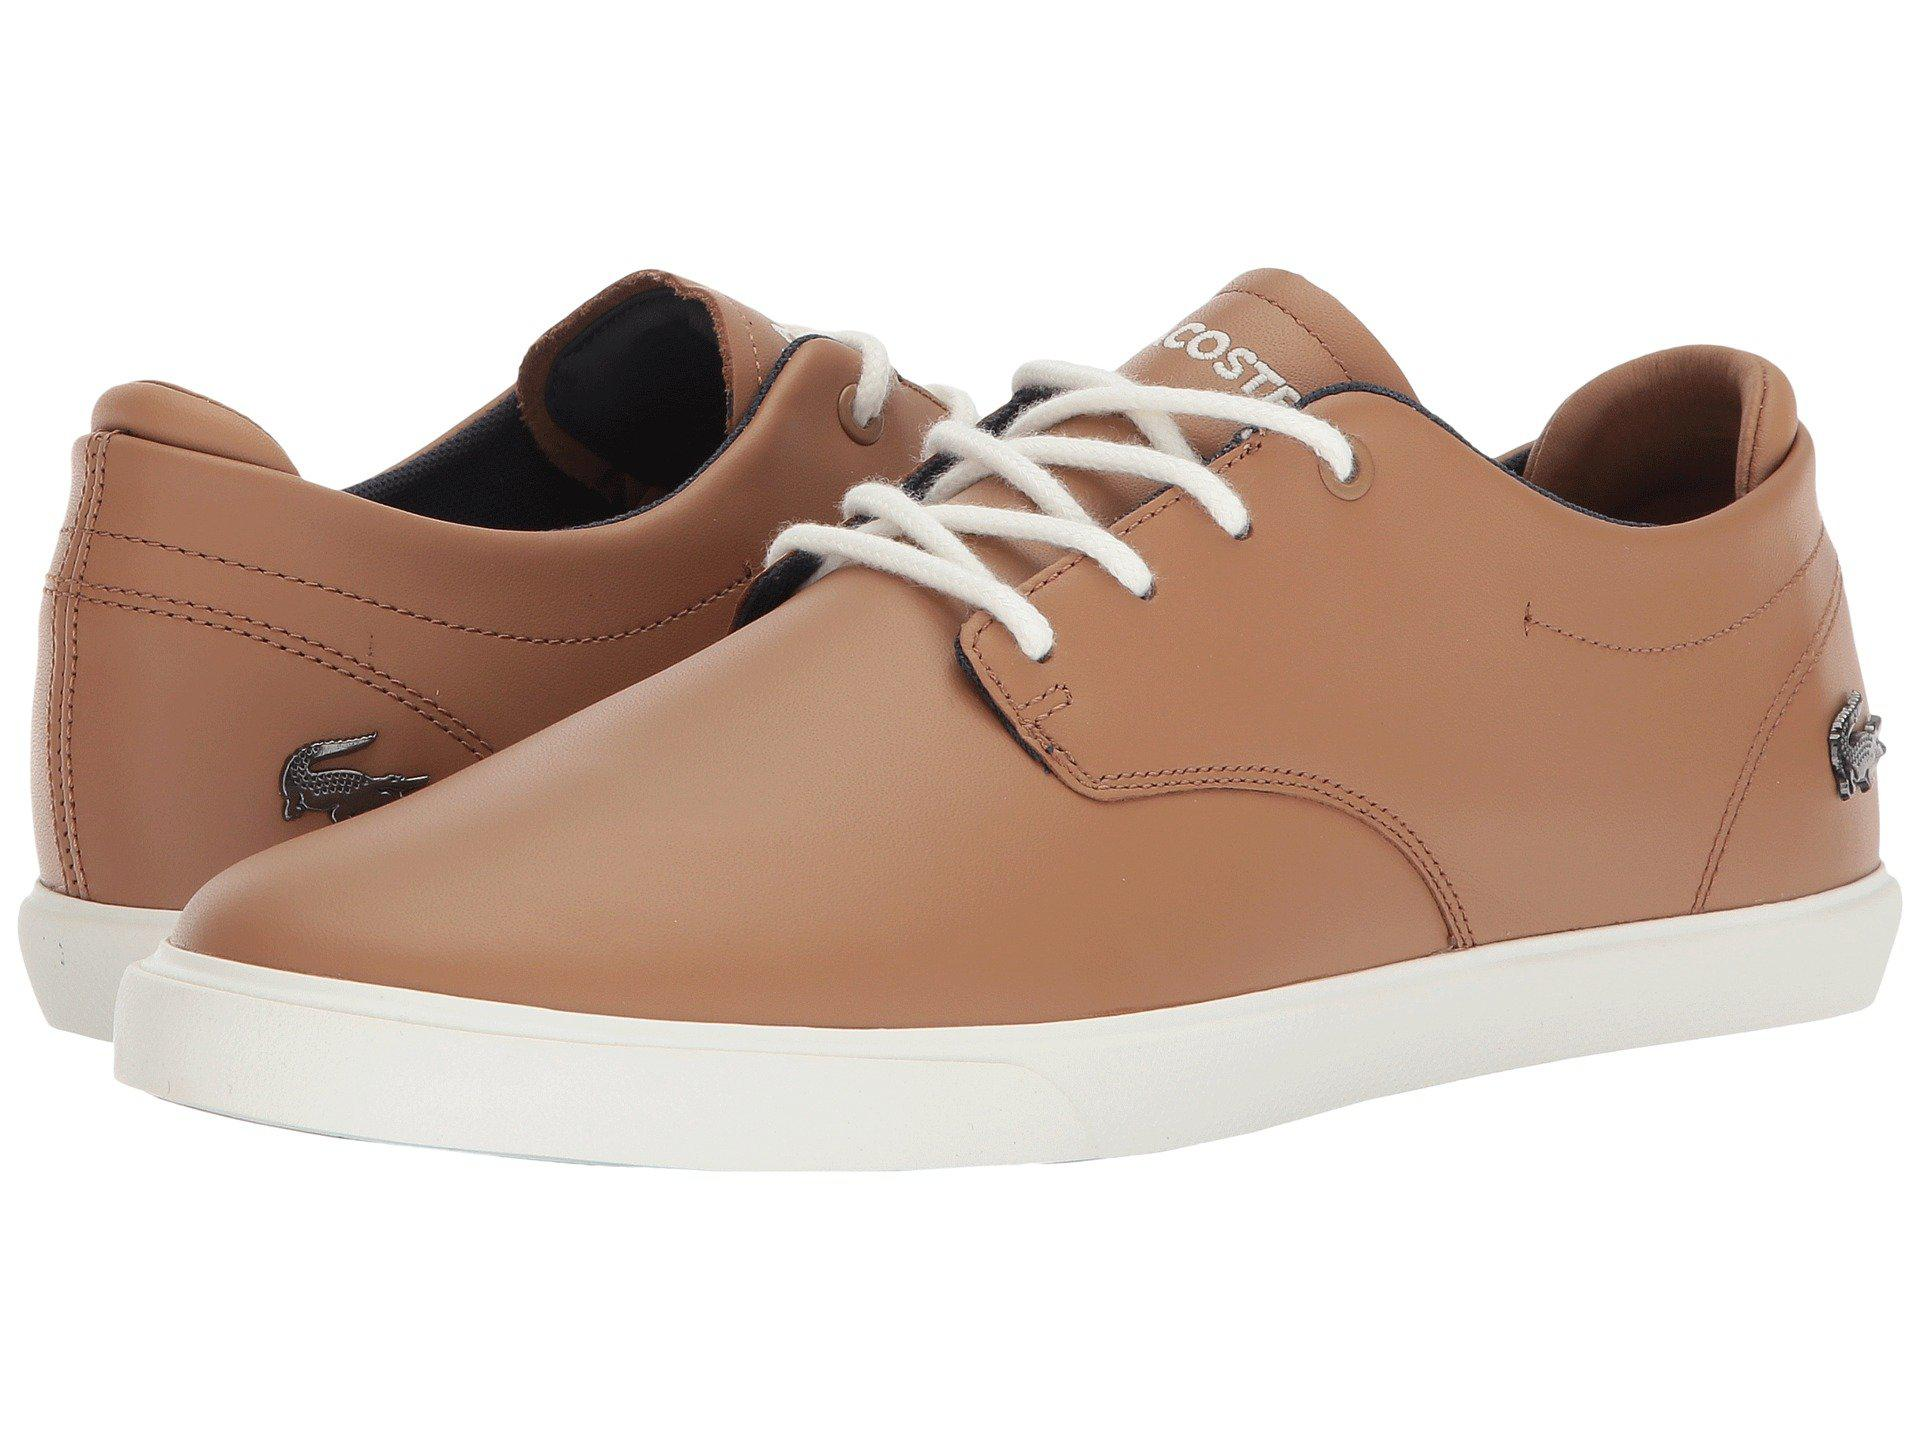 9477ddcfb3ae7 Lyst - Lacoste Esparre 118 1 (khaki off-white) Men s Shoes in Brown ...